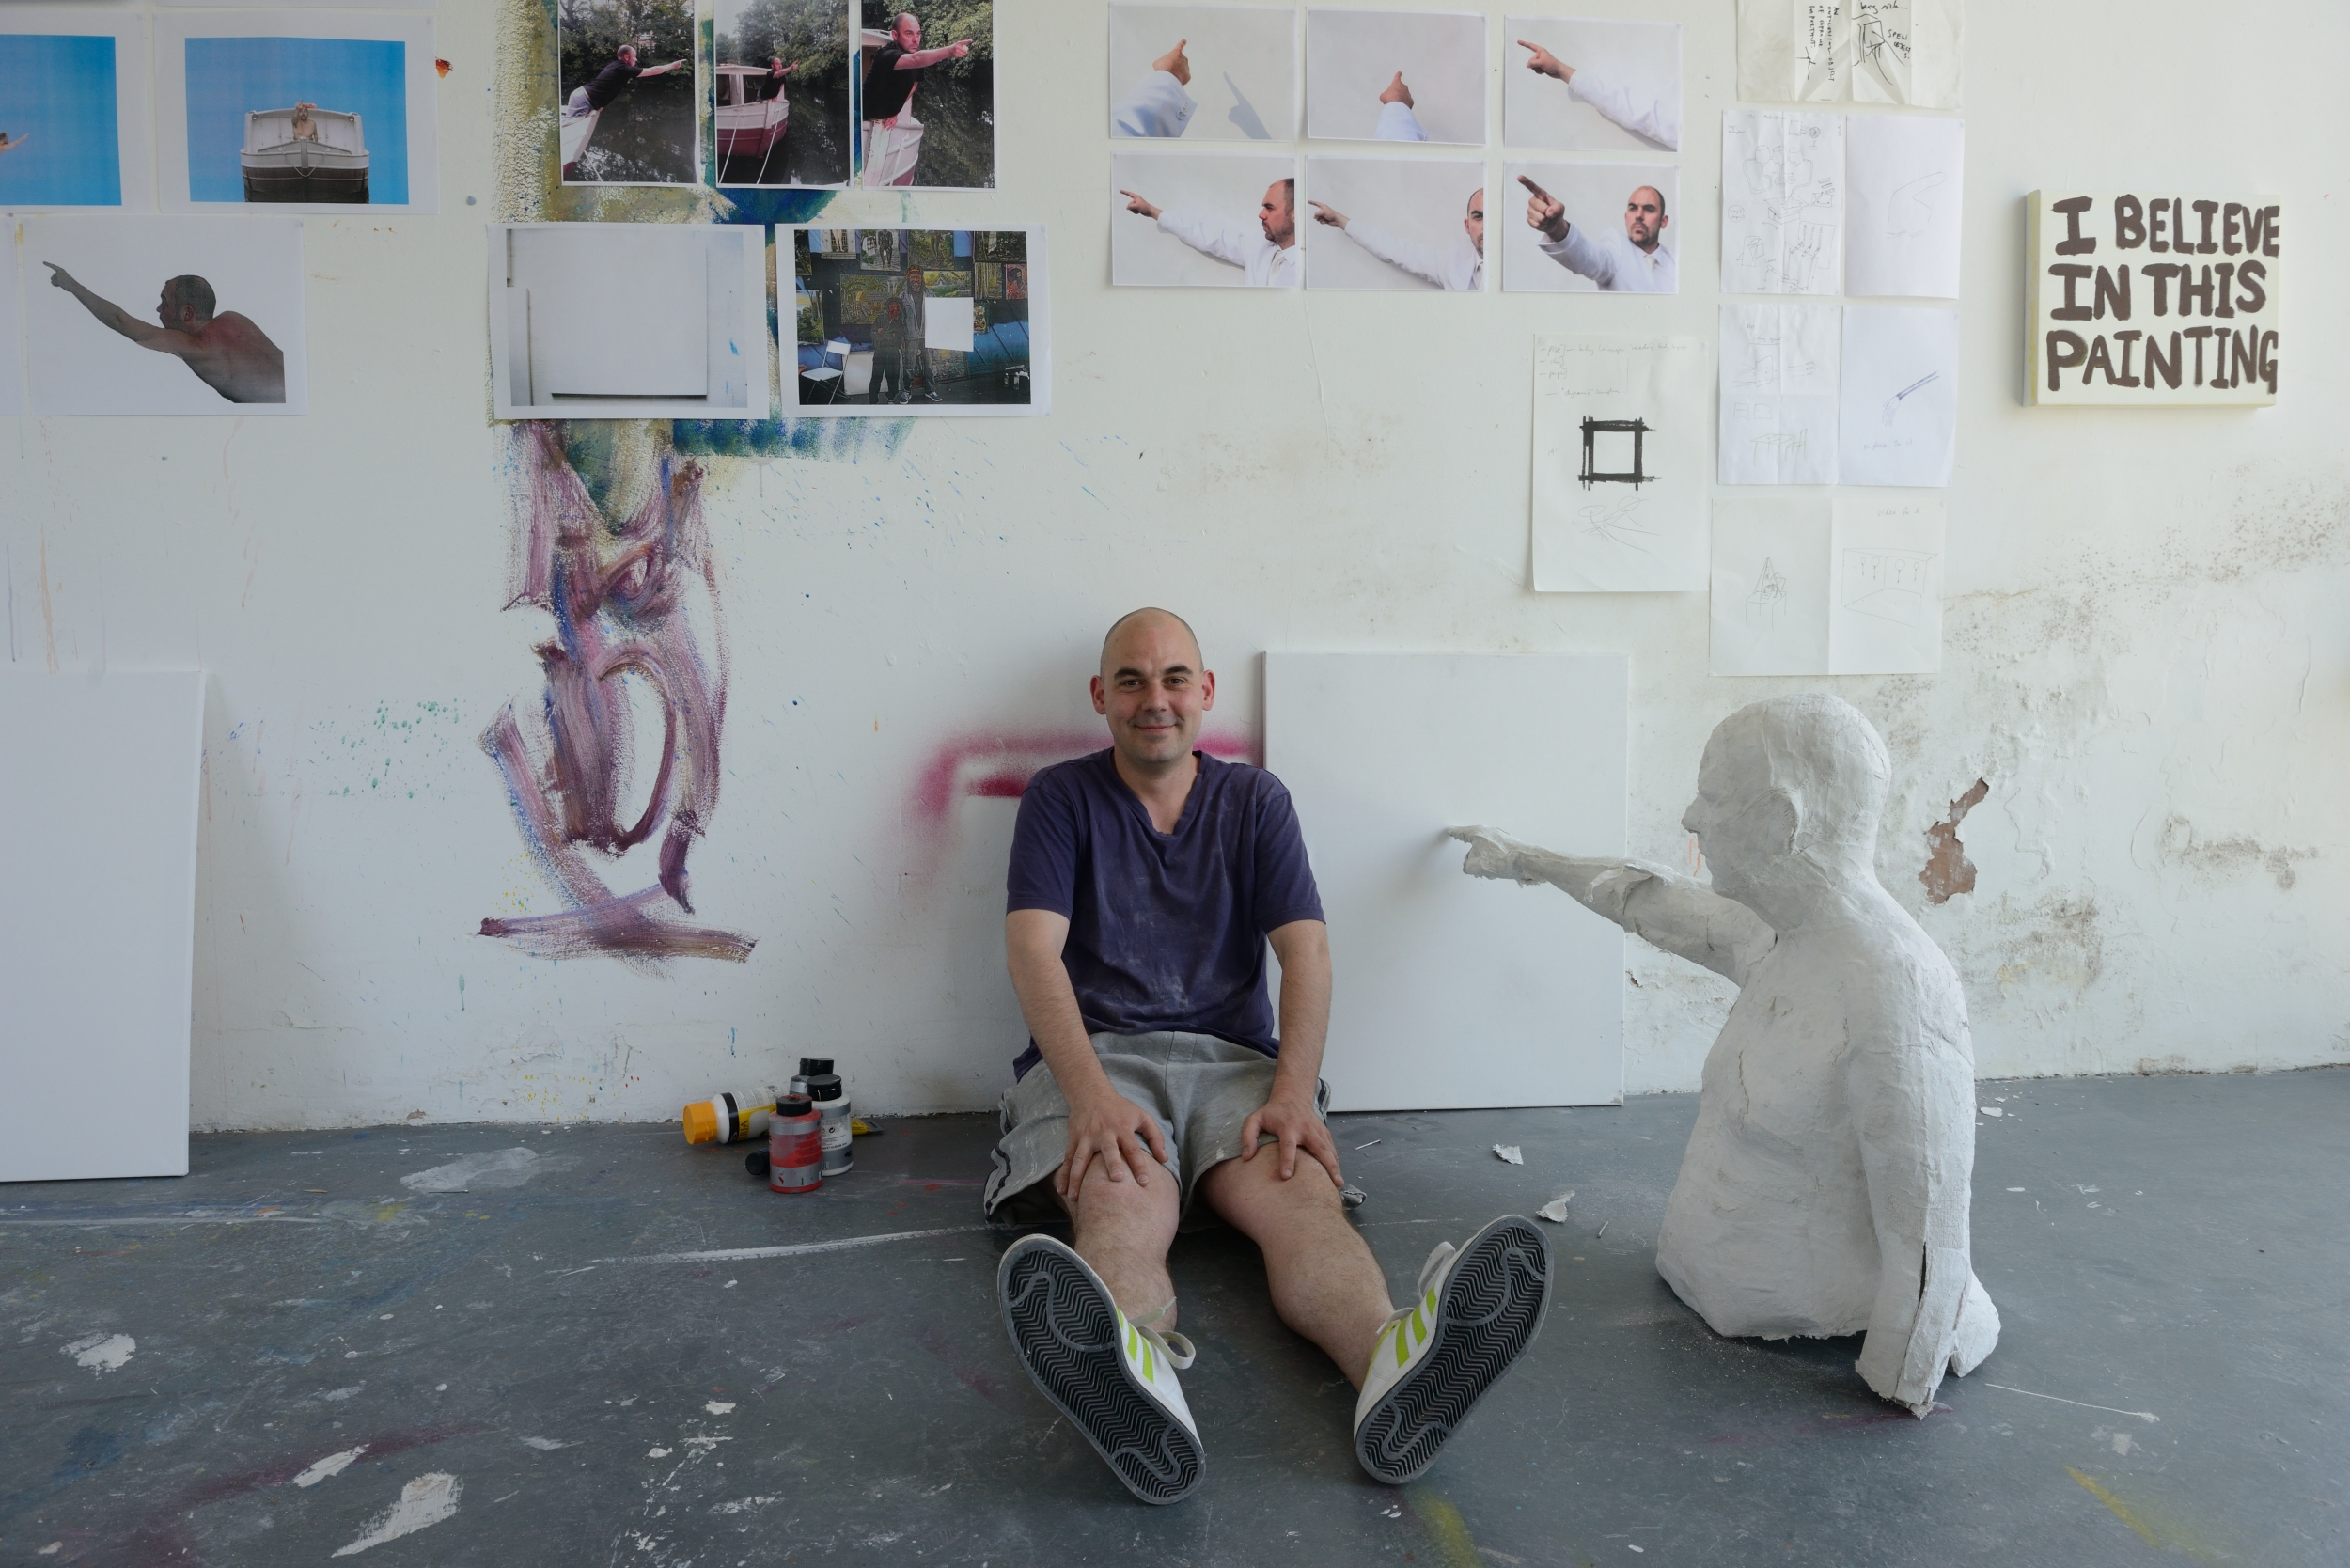 Alexander Costello in the Sculpture Shock Studio, photo by AK Purkiss